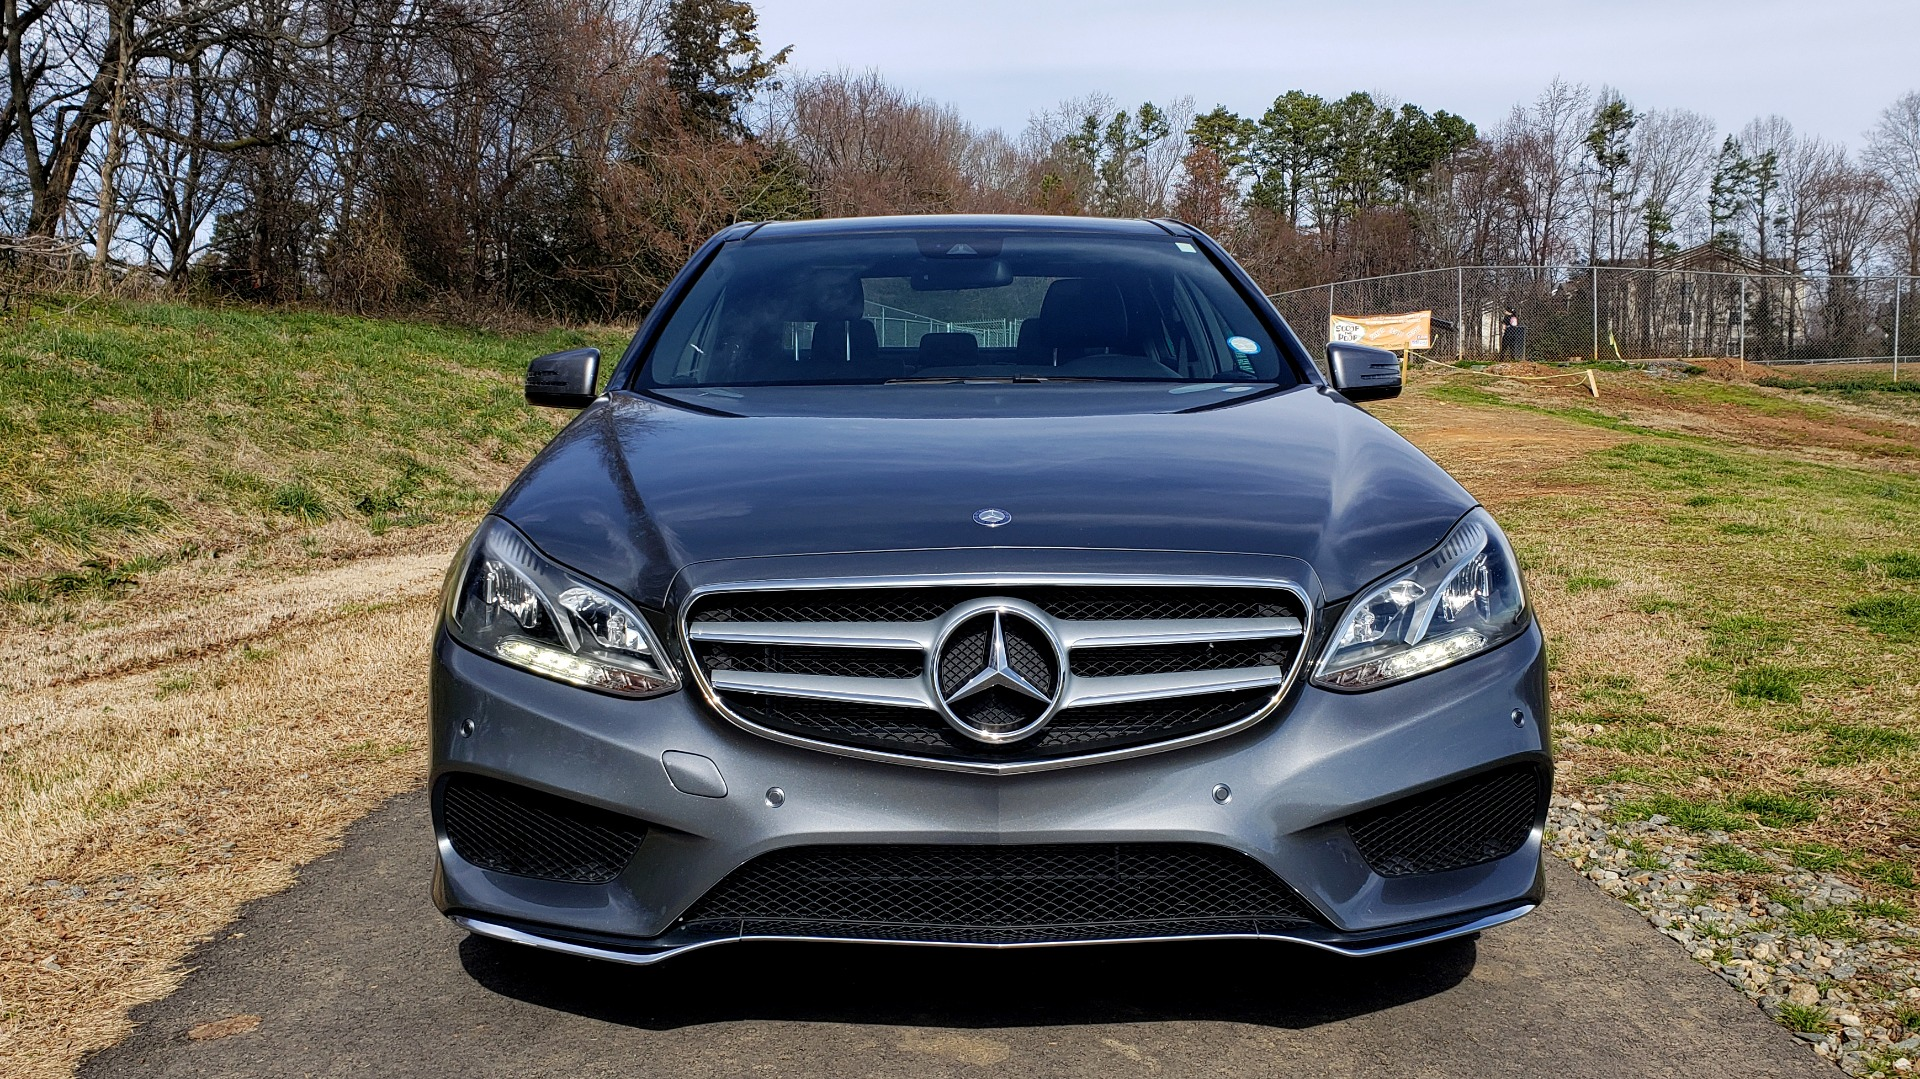 Used 2016 Mercedes-Benz E-CLASS E 350 PREM / KEYLESS-GO / NAV / SUNROOF / REARVIEW for sale Sold at Formula Imports in Charlotte NC 28227 9